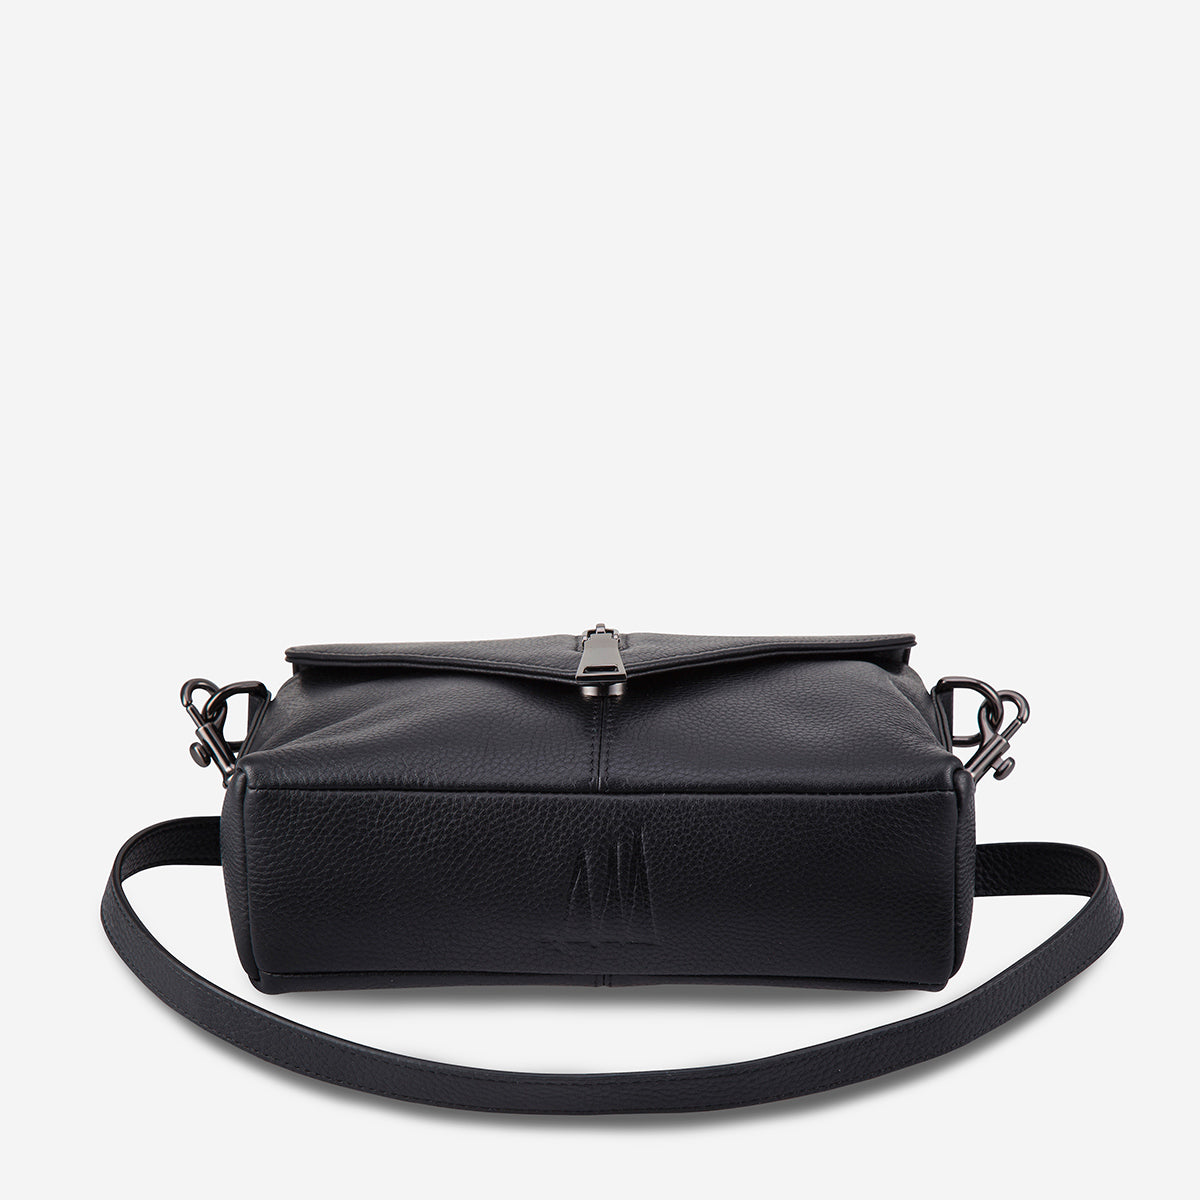 Status Anxiety Exile Crossbody Bag - Black